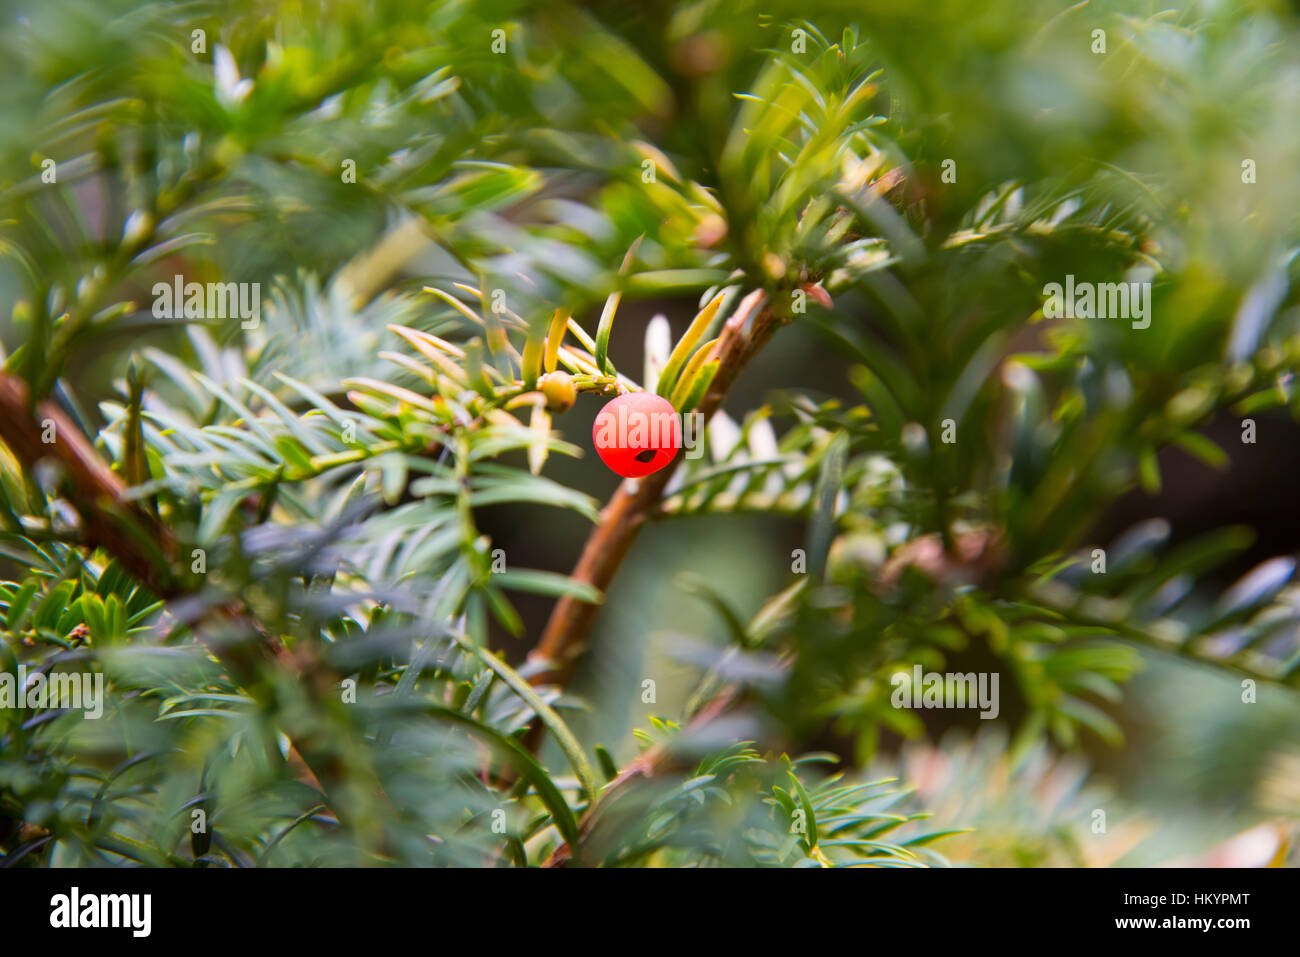 Yew tree berry. - Stock Image